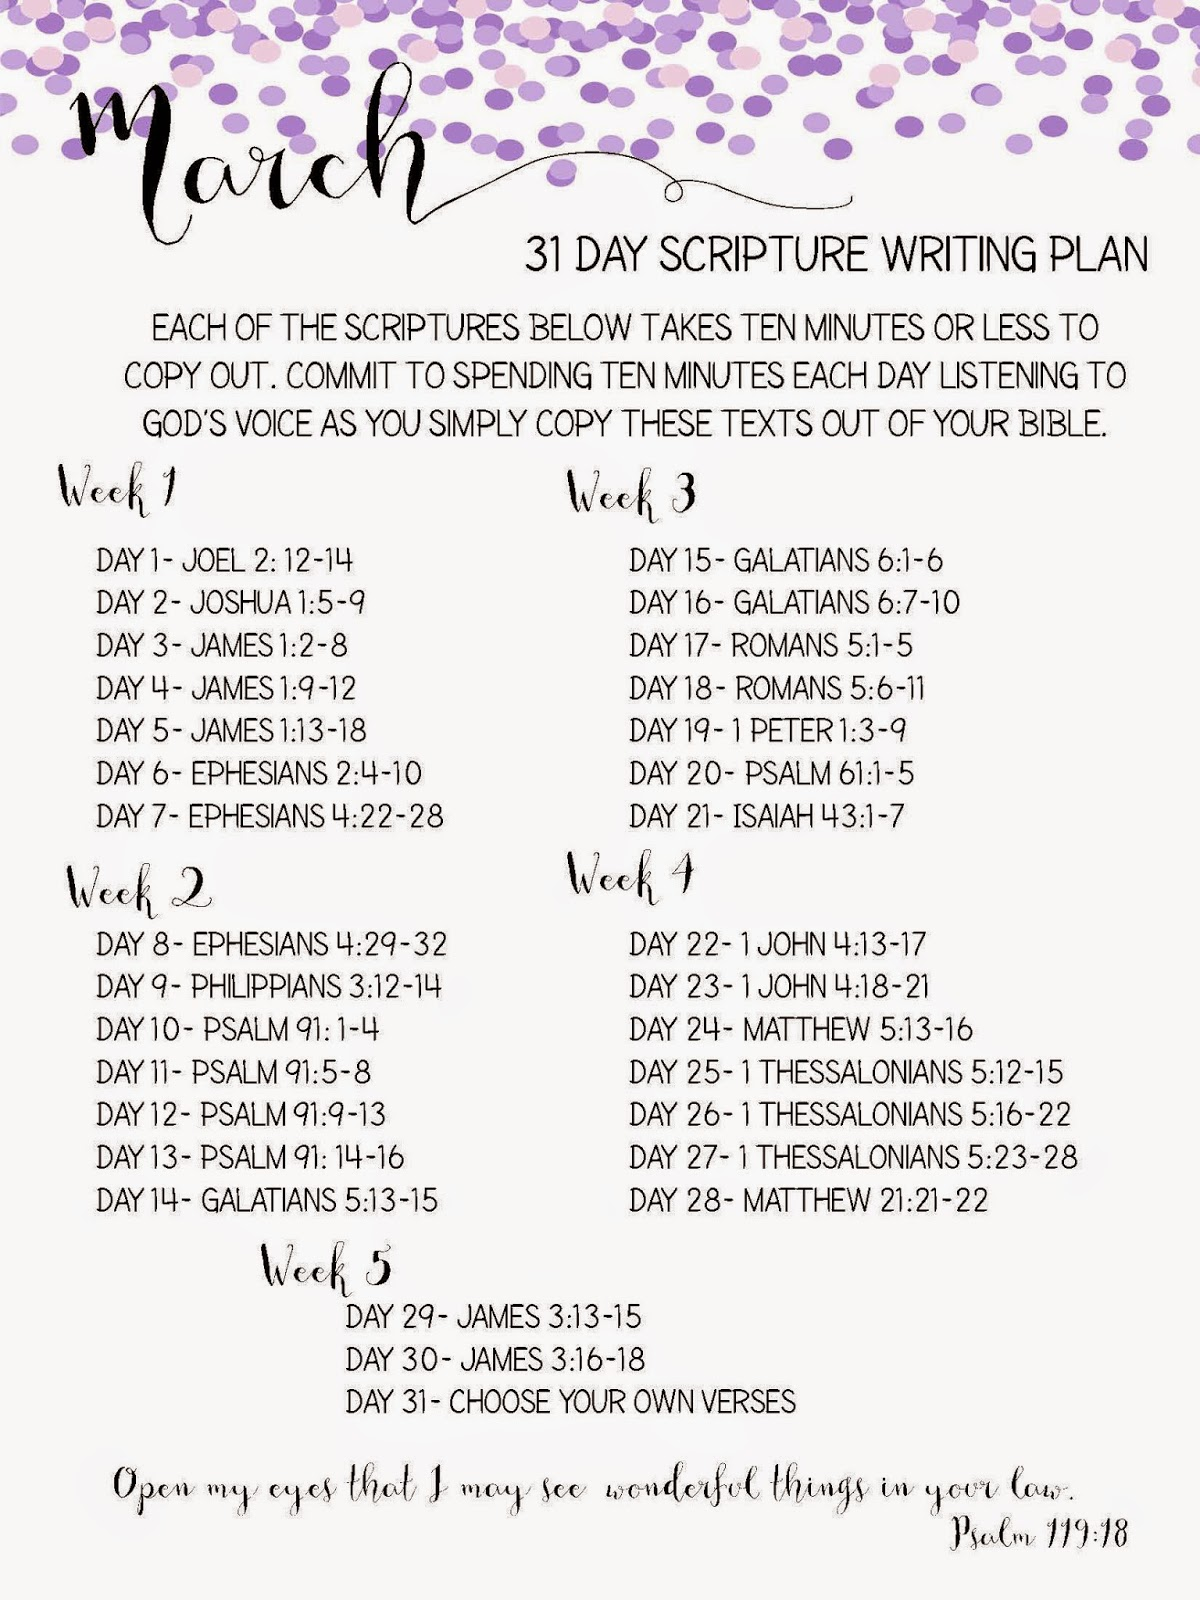 Sweet Blessings: March Scripture Writing Plan